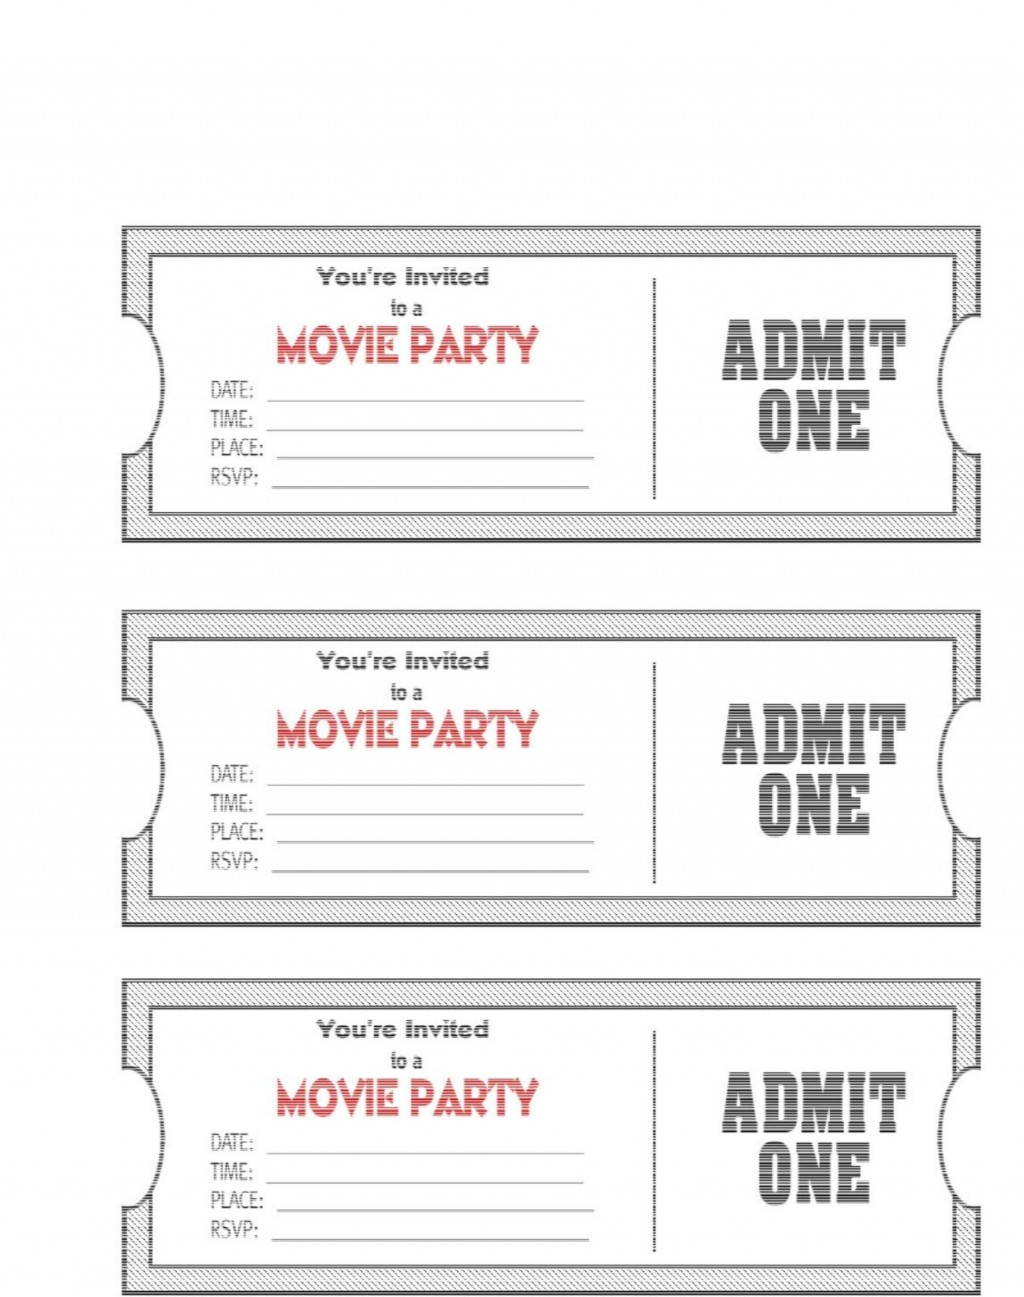 004 Phenomenal Editable Ticket Template Free Image  Word Airline RaffleLarge